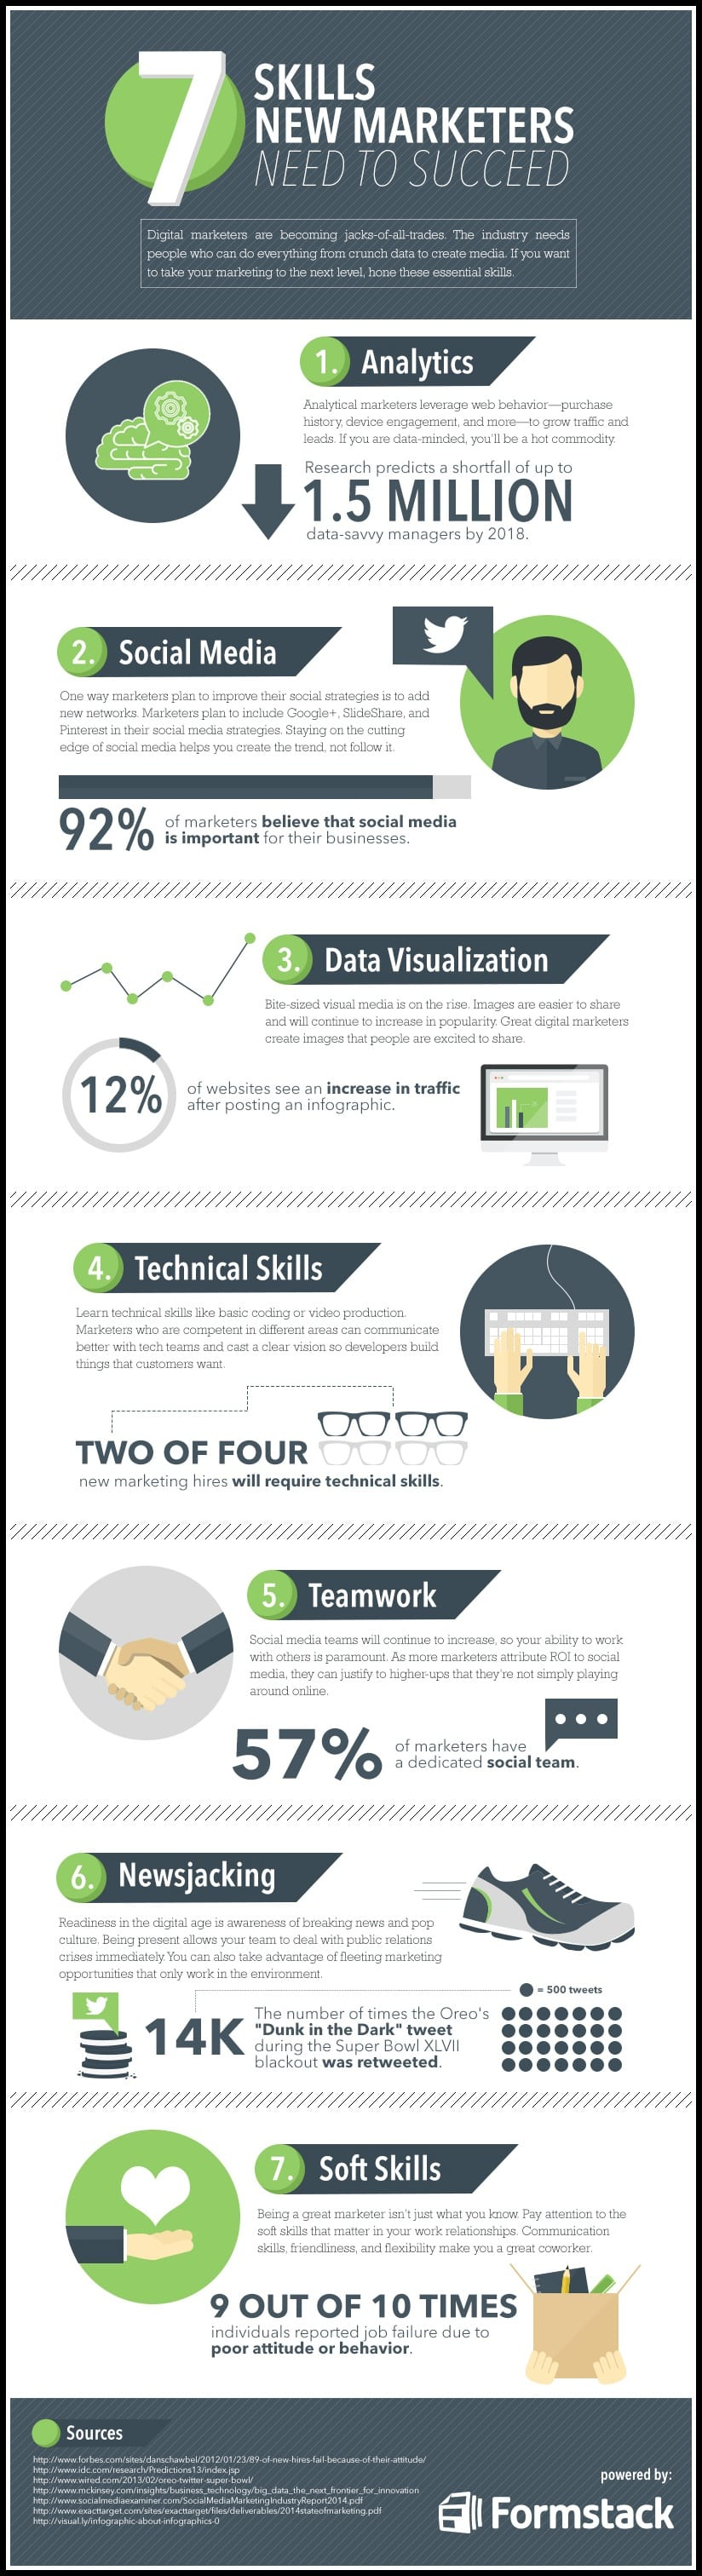 skills-marketers-need-infographic.jpg